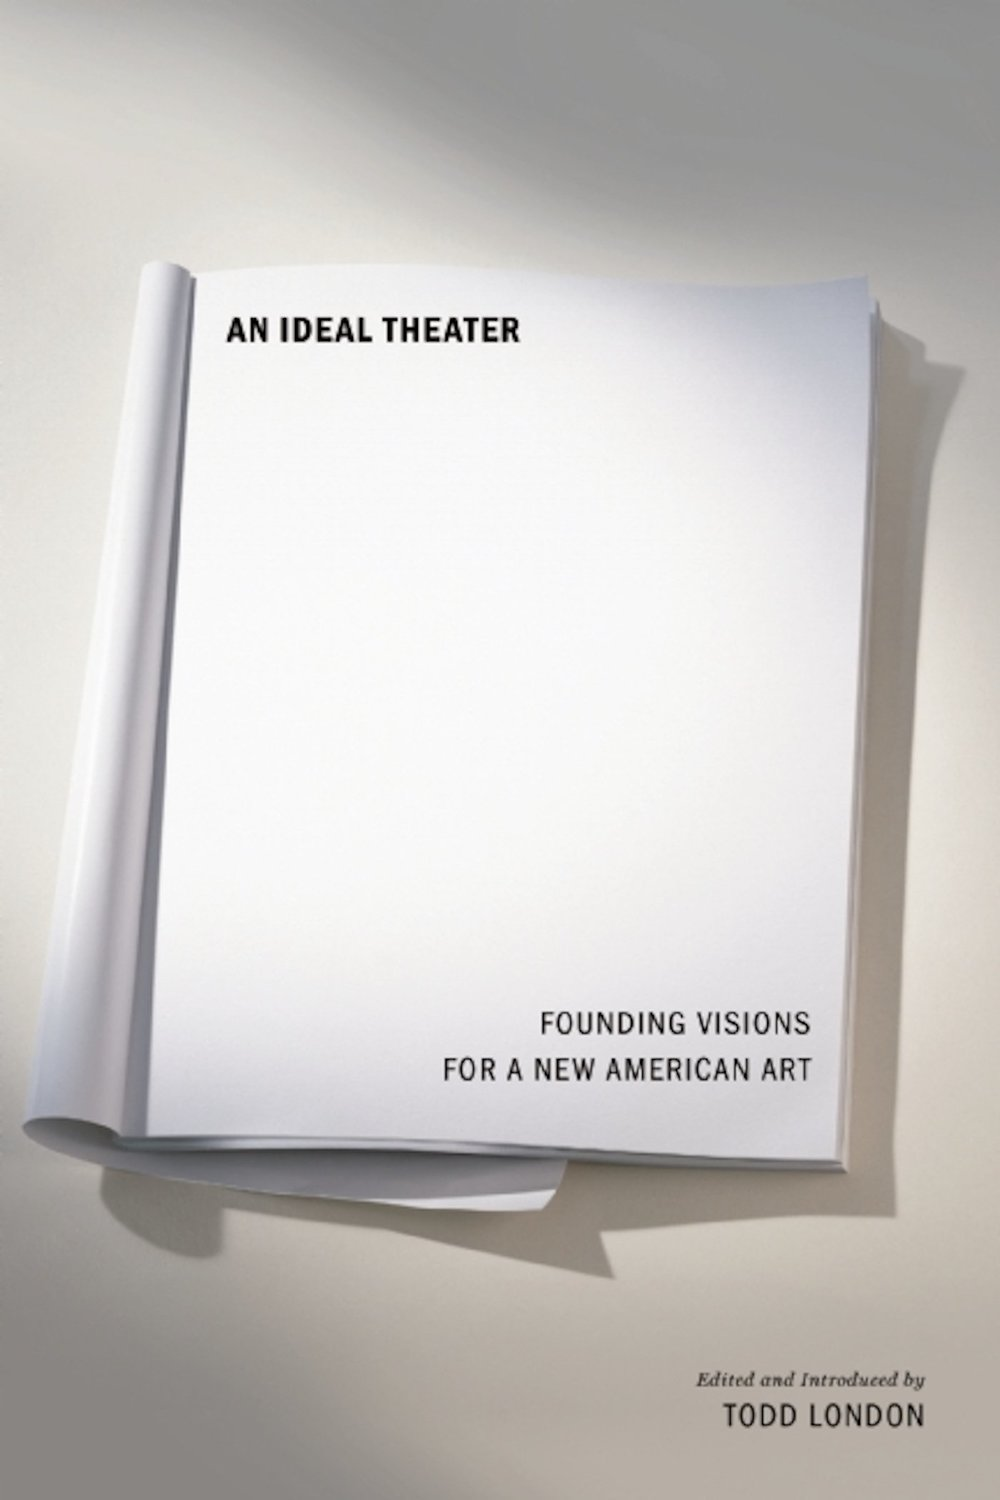 AN IDEAL THEATER